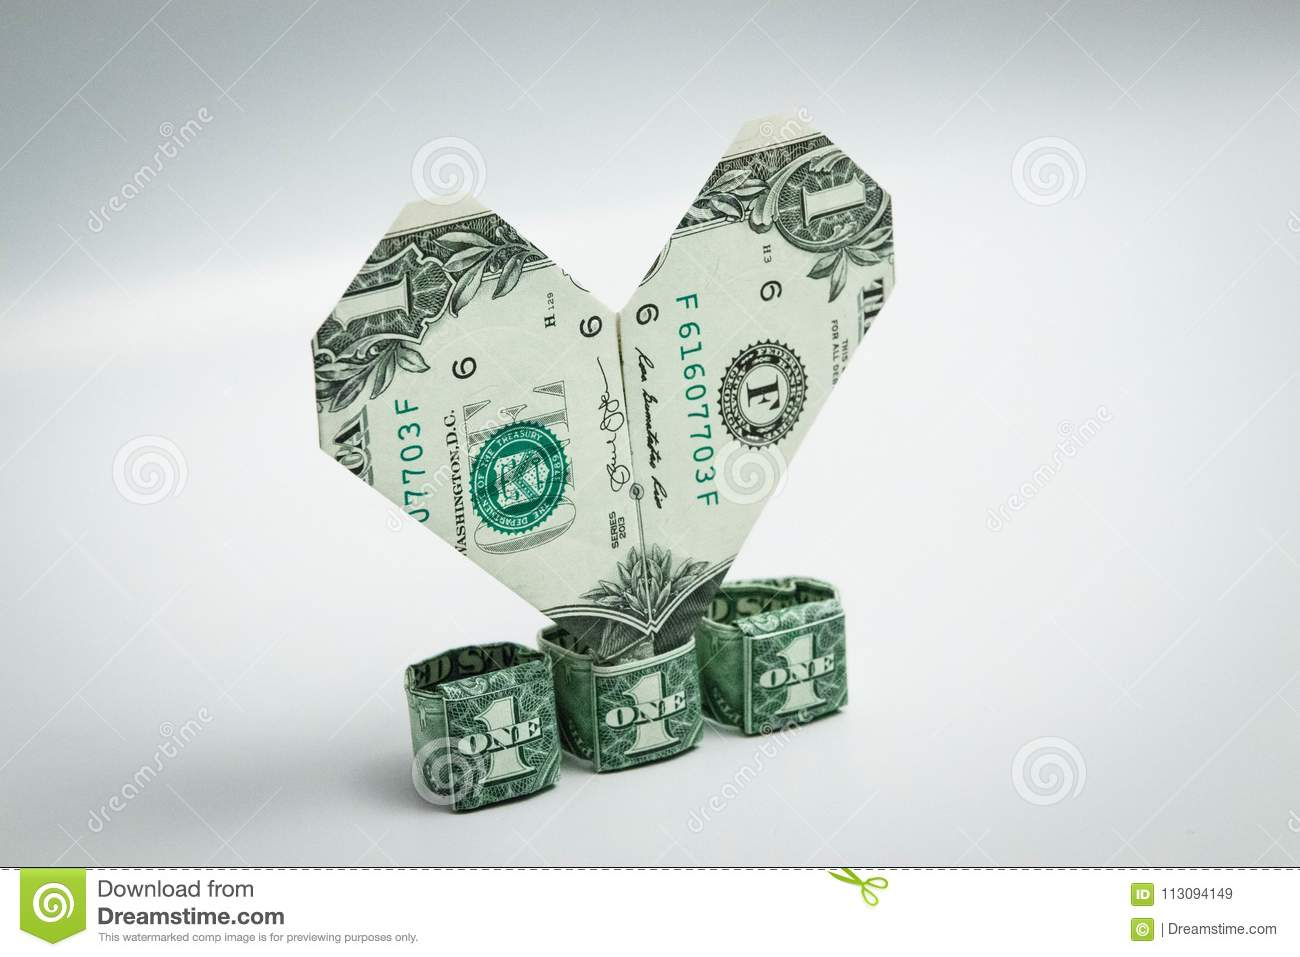 Easy Money Origami Heart Folding Instructions - How to Make Dollar ... | 957x1300